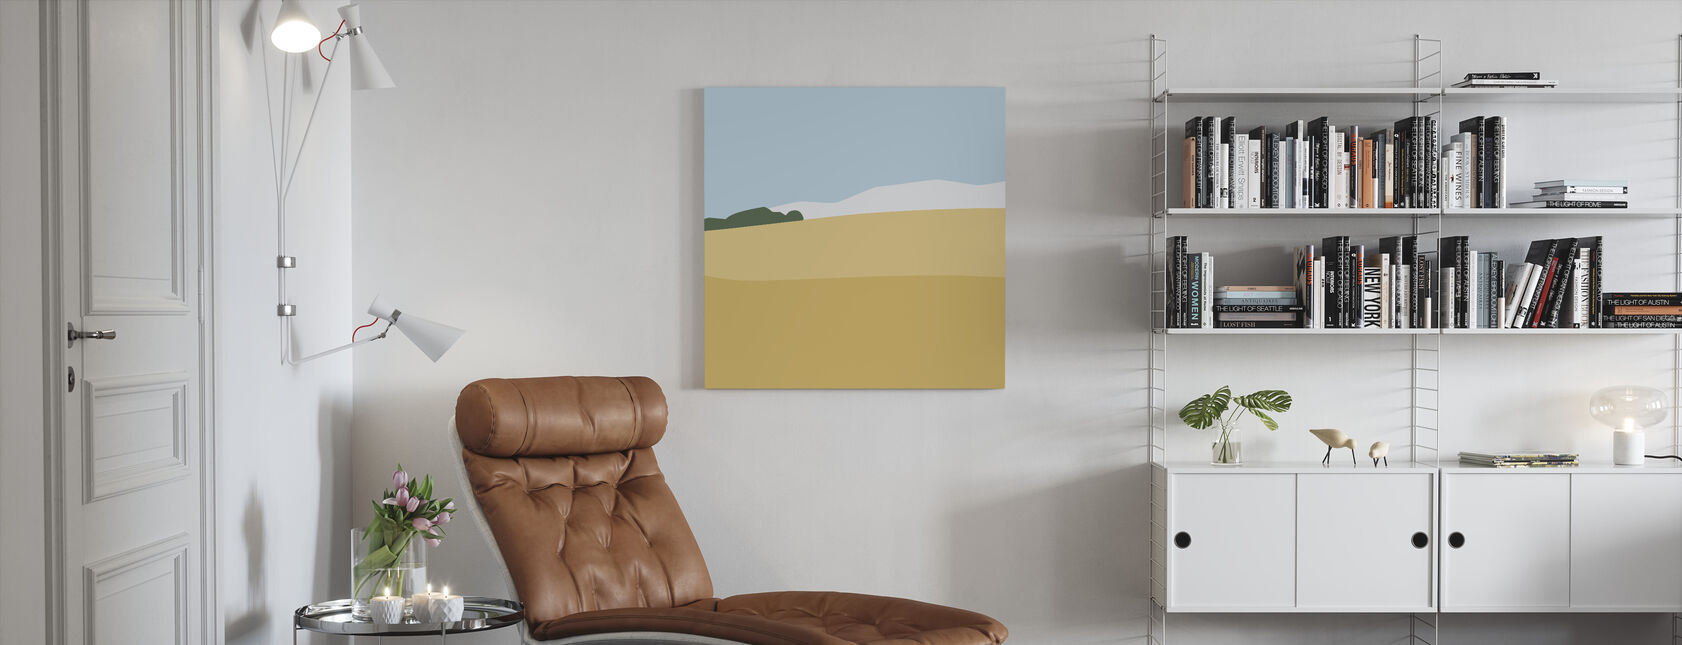 L1 Landscape I - Canvas print - Living Room